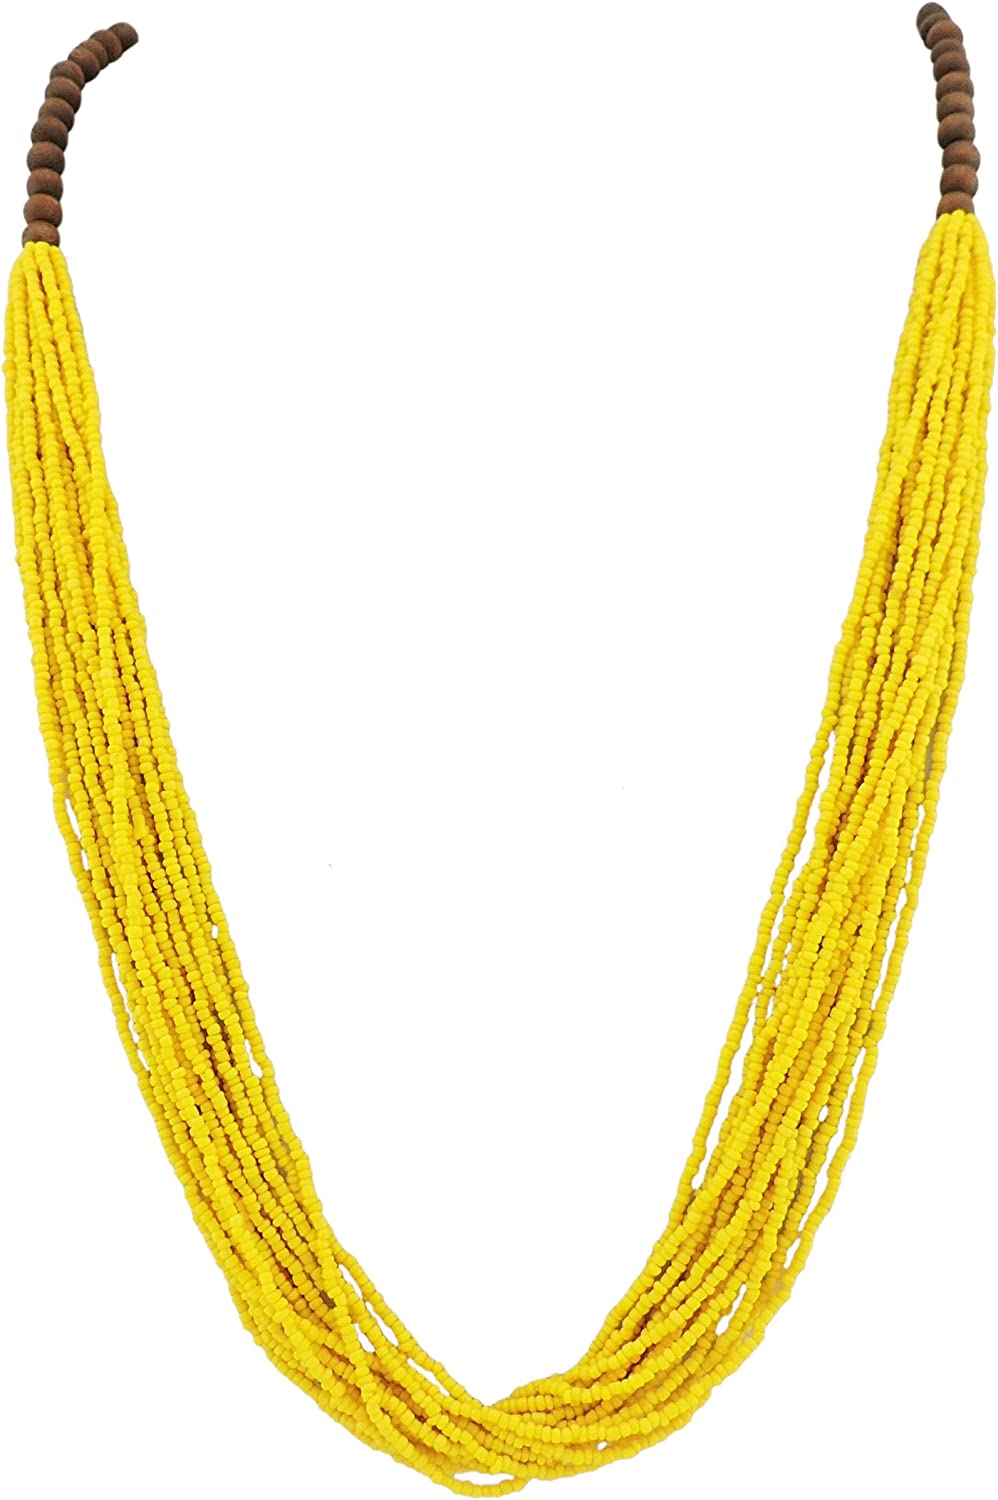 BOCAR Long Multiple Row Handmade Beaded Statement Necklace with Gift Box (NK-10407)